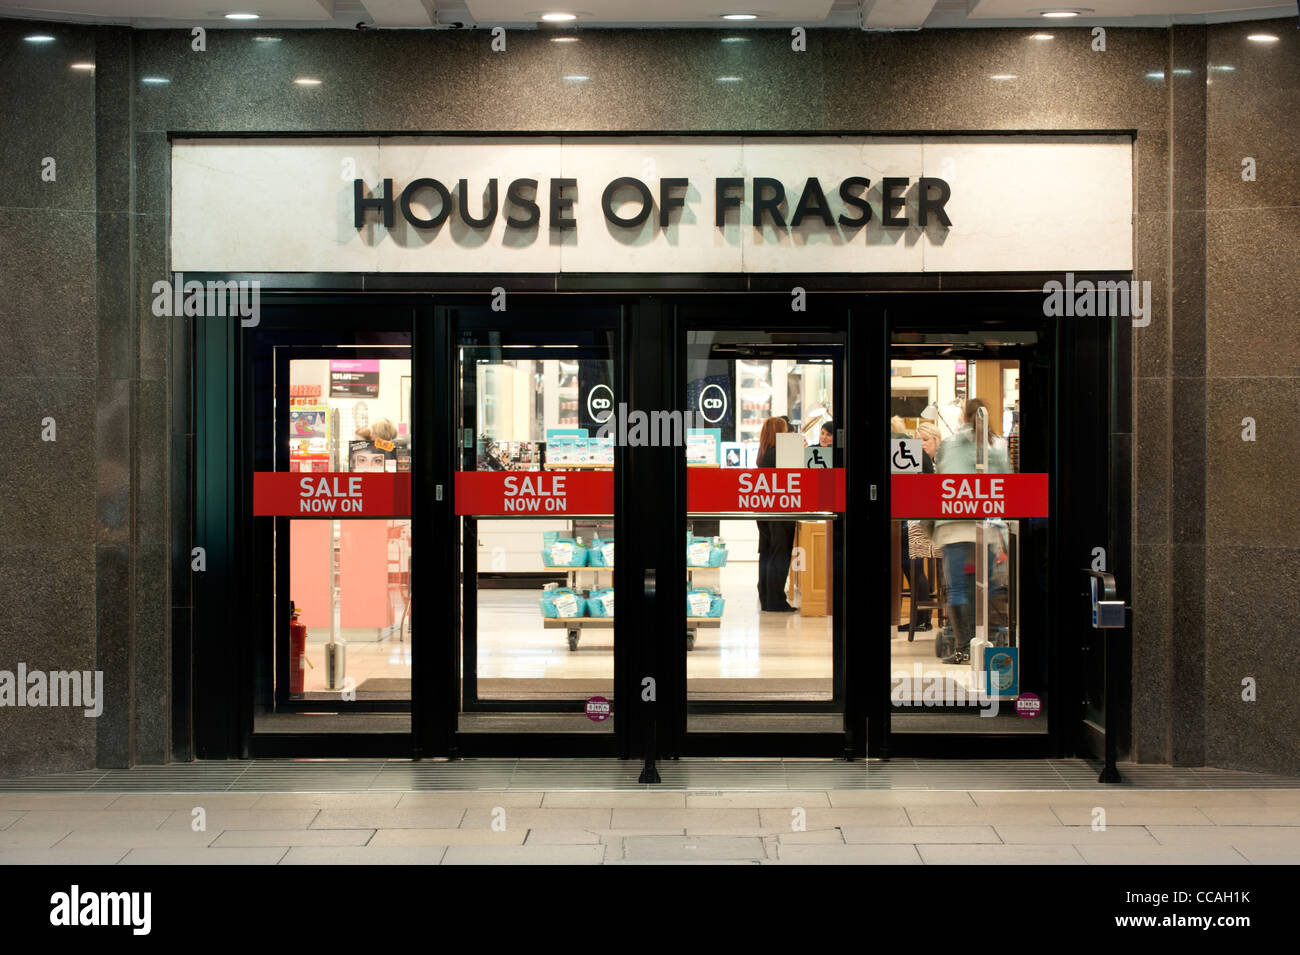 The entrance to the department store House of Fraser (aka kendals) on Deansgate, Manchester, UK. (Editorial use - Stock Image